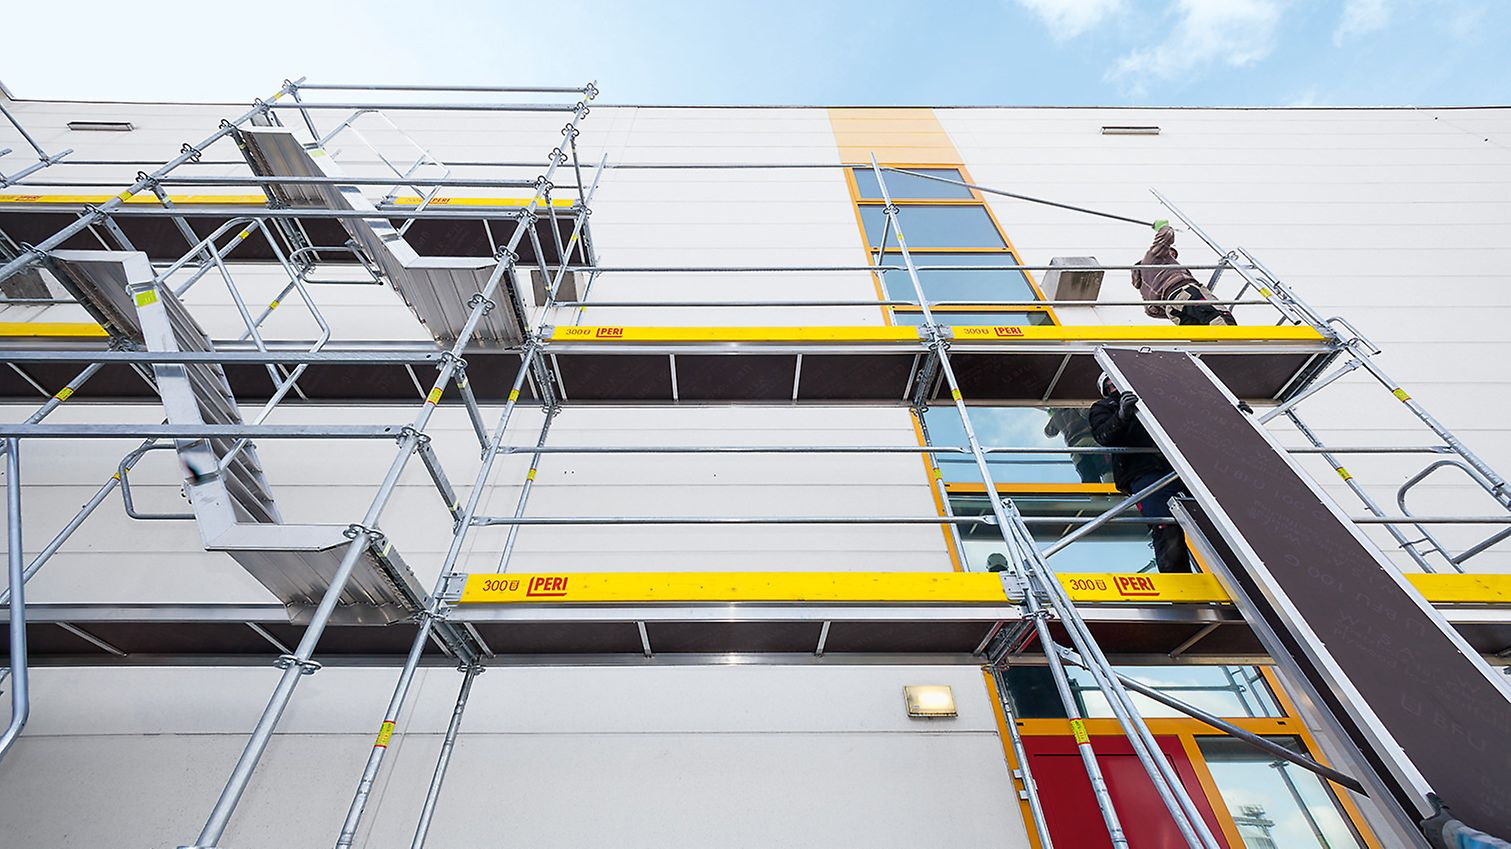 With the integrated rosette nodes, the scaffolding can be combined with the system components of the PERI UP Flex Modular Scaffolding.